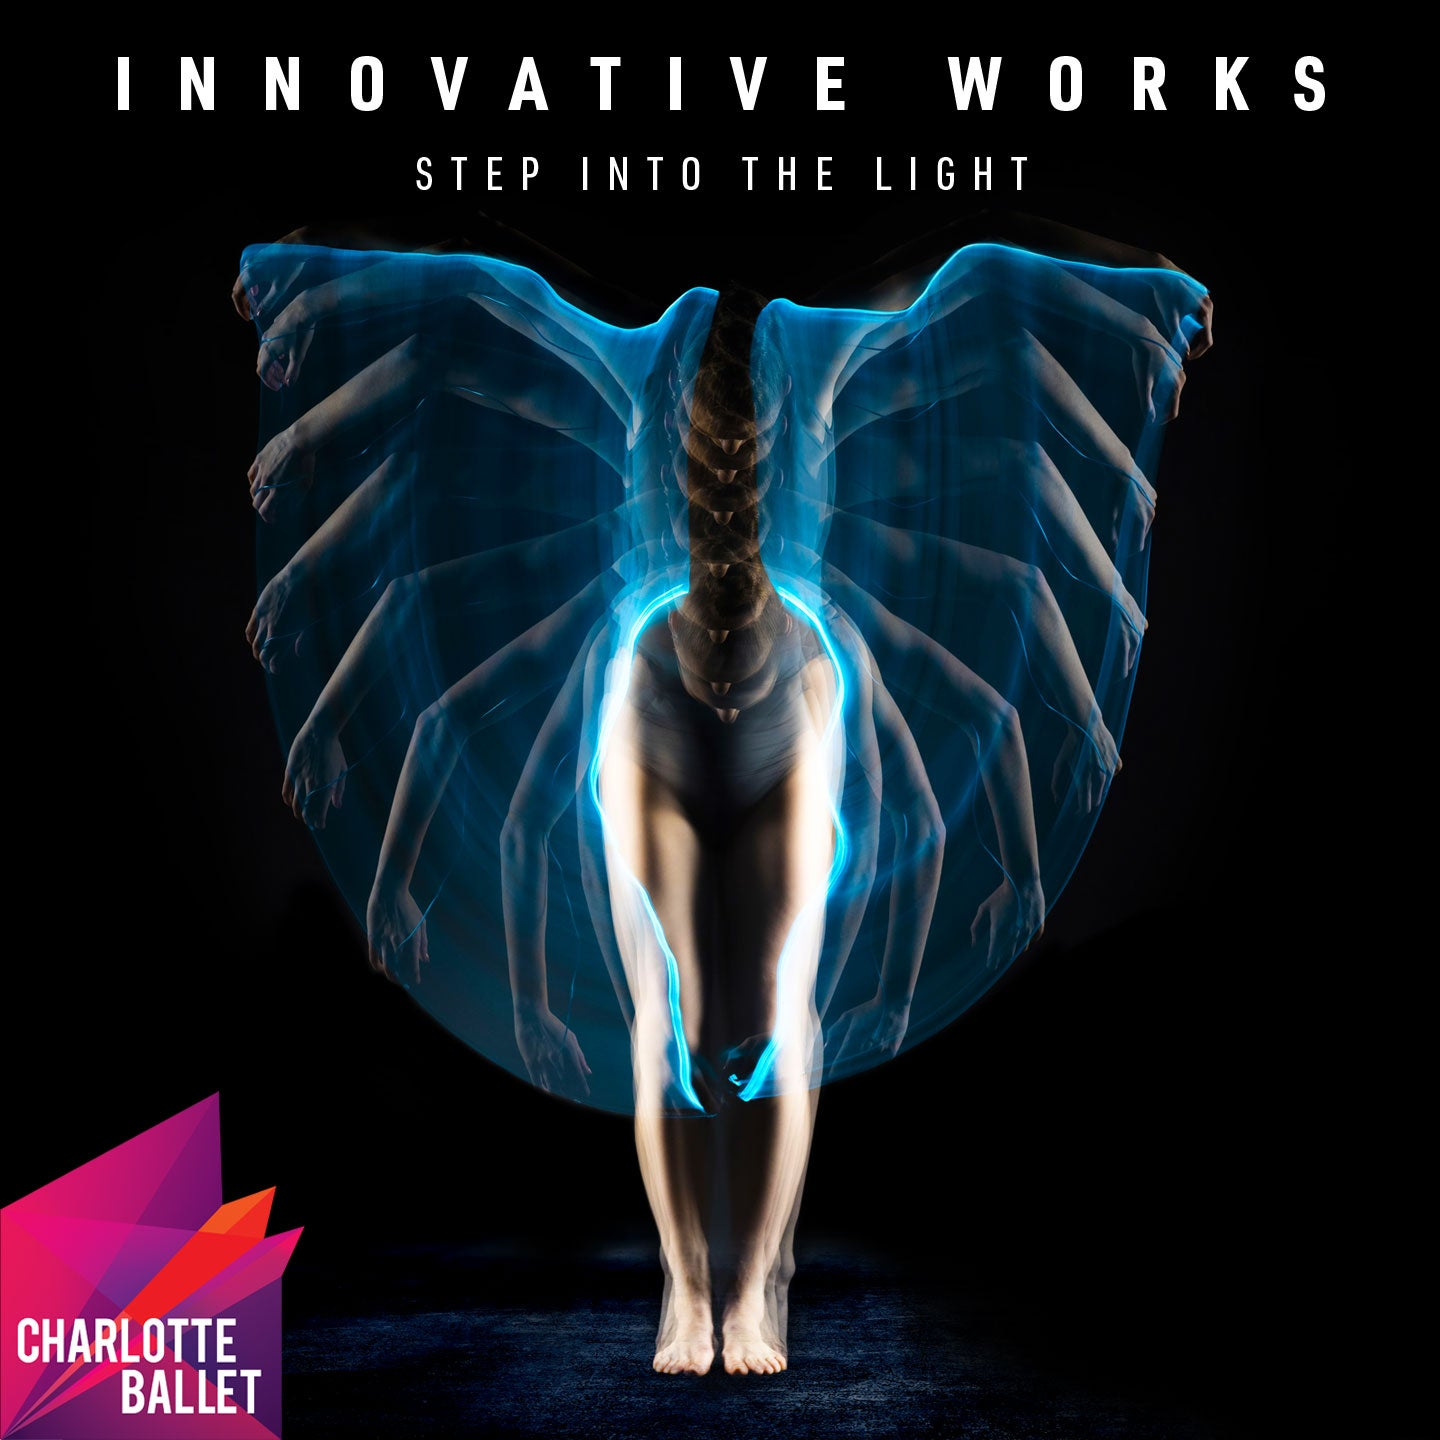 Charlotte Ballet: Innovative Works